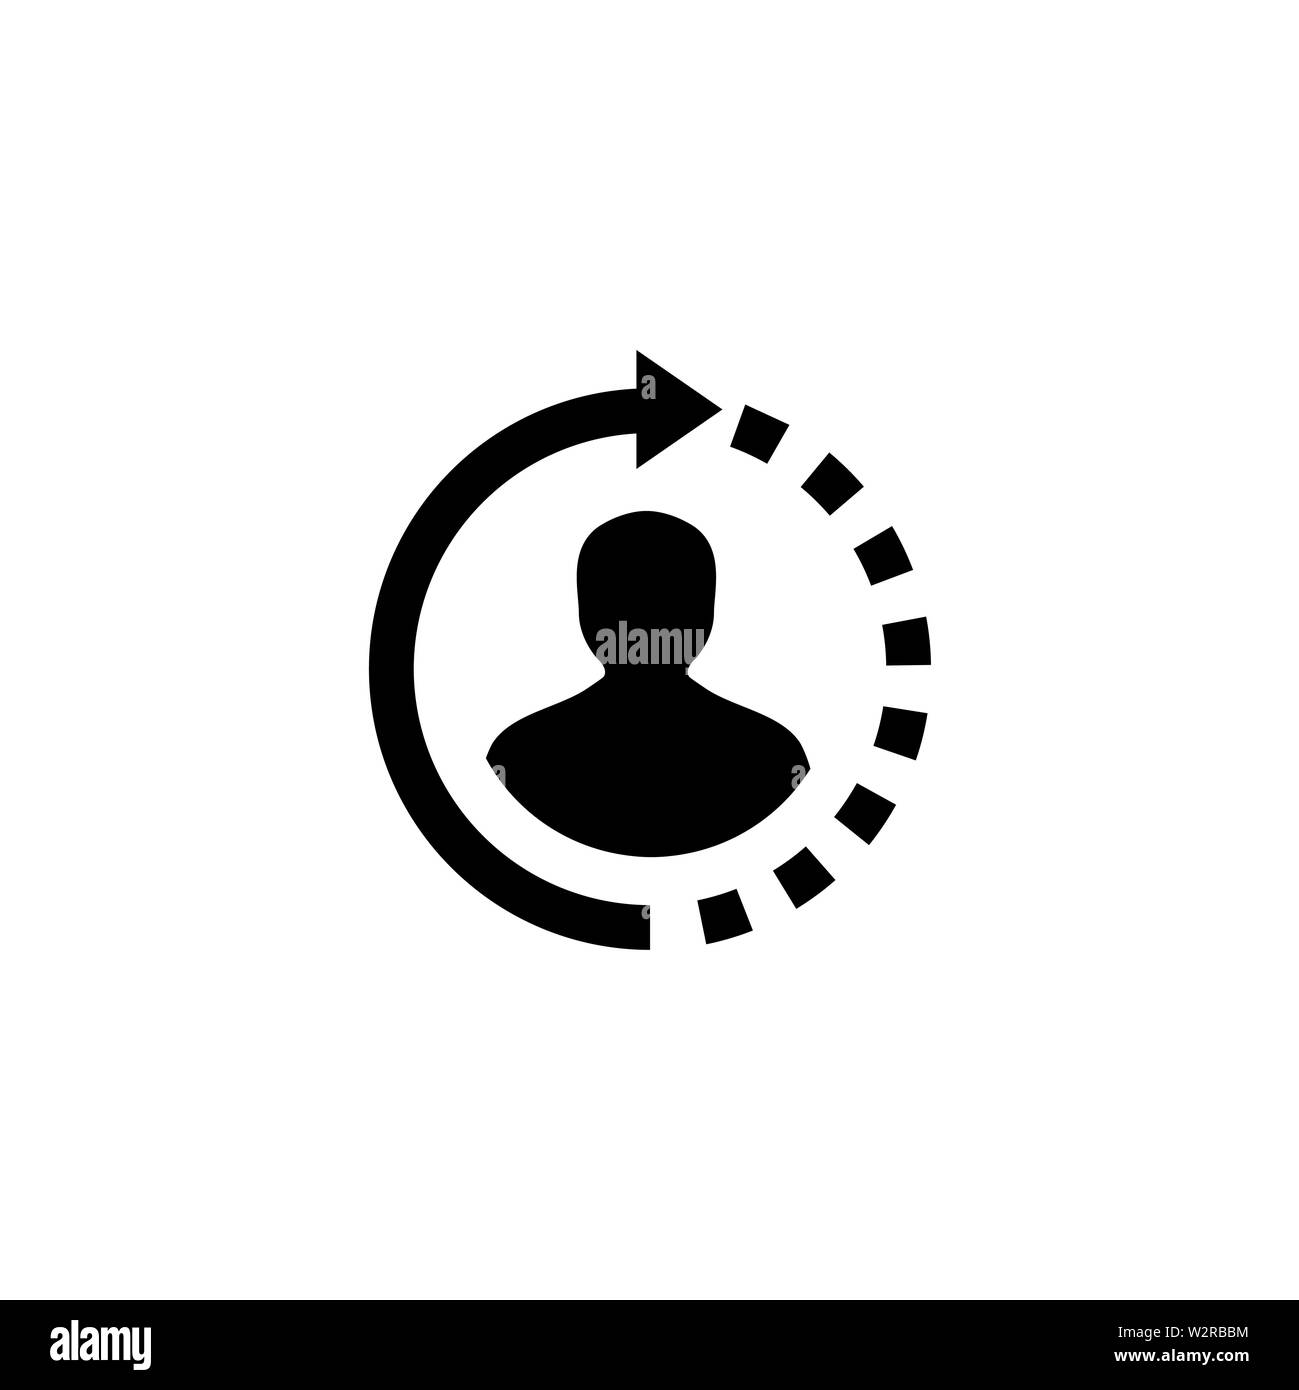 Support Icon In Flat Style Vector For Apps, UI, Websites. Black Icon Vector Illustration. Stock Photo